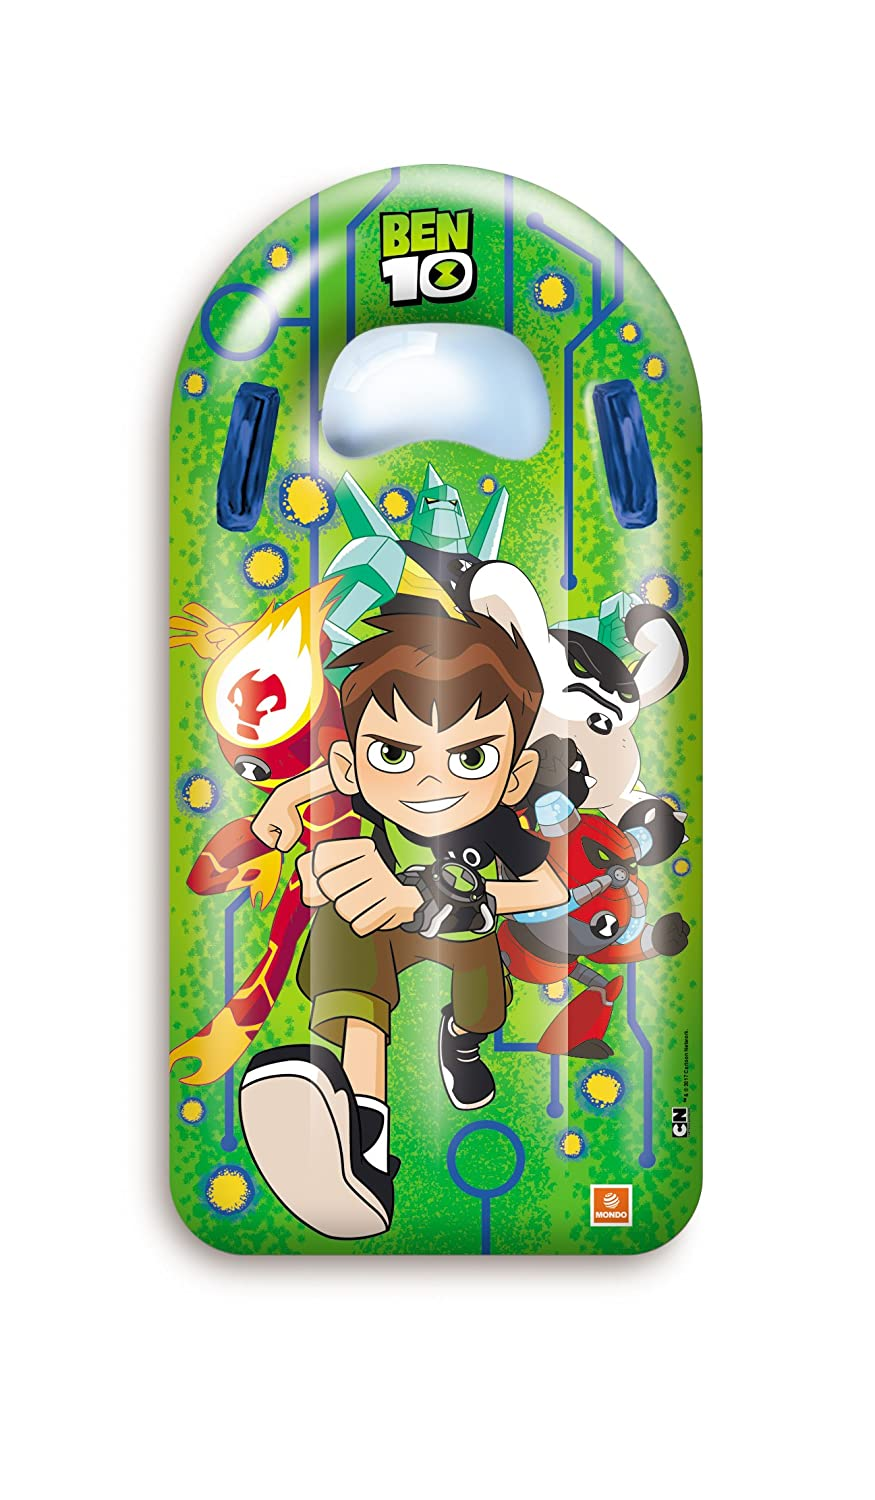 Amazon.com: World Mat – Ben 10 with Viewing Window, 16678 ...